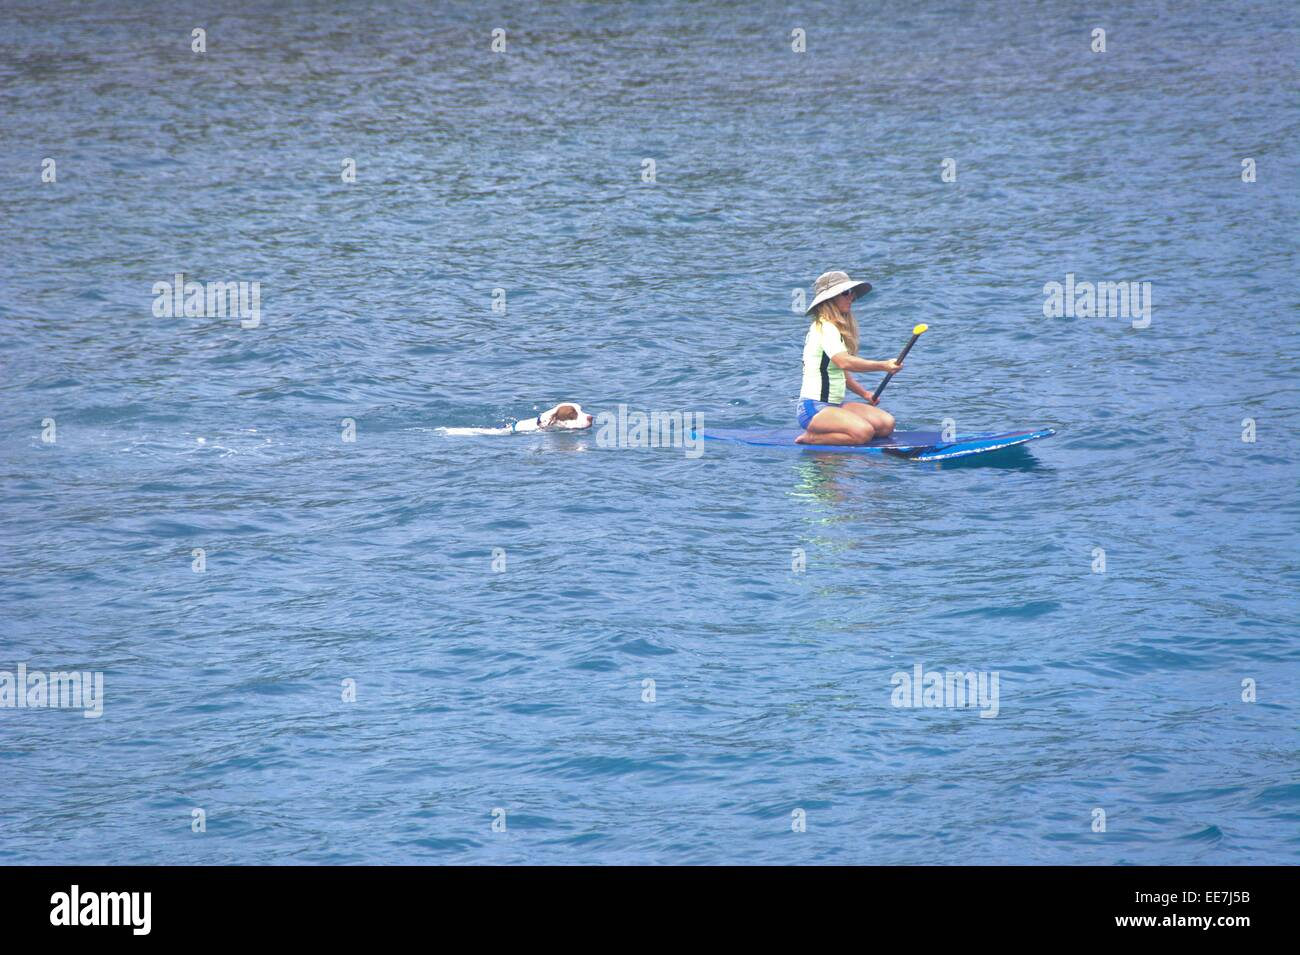 Dog swimming after paddle boarder Stock Photo